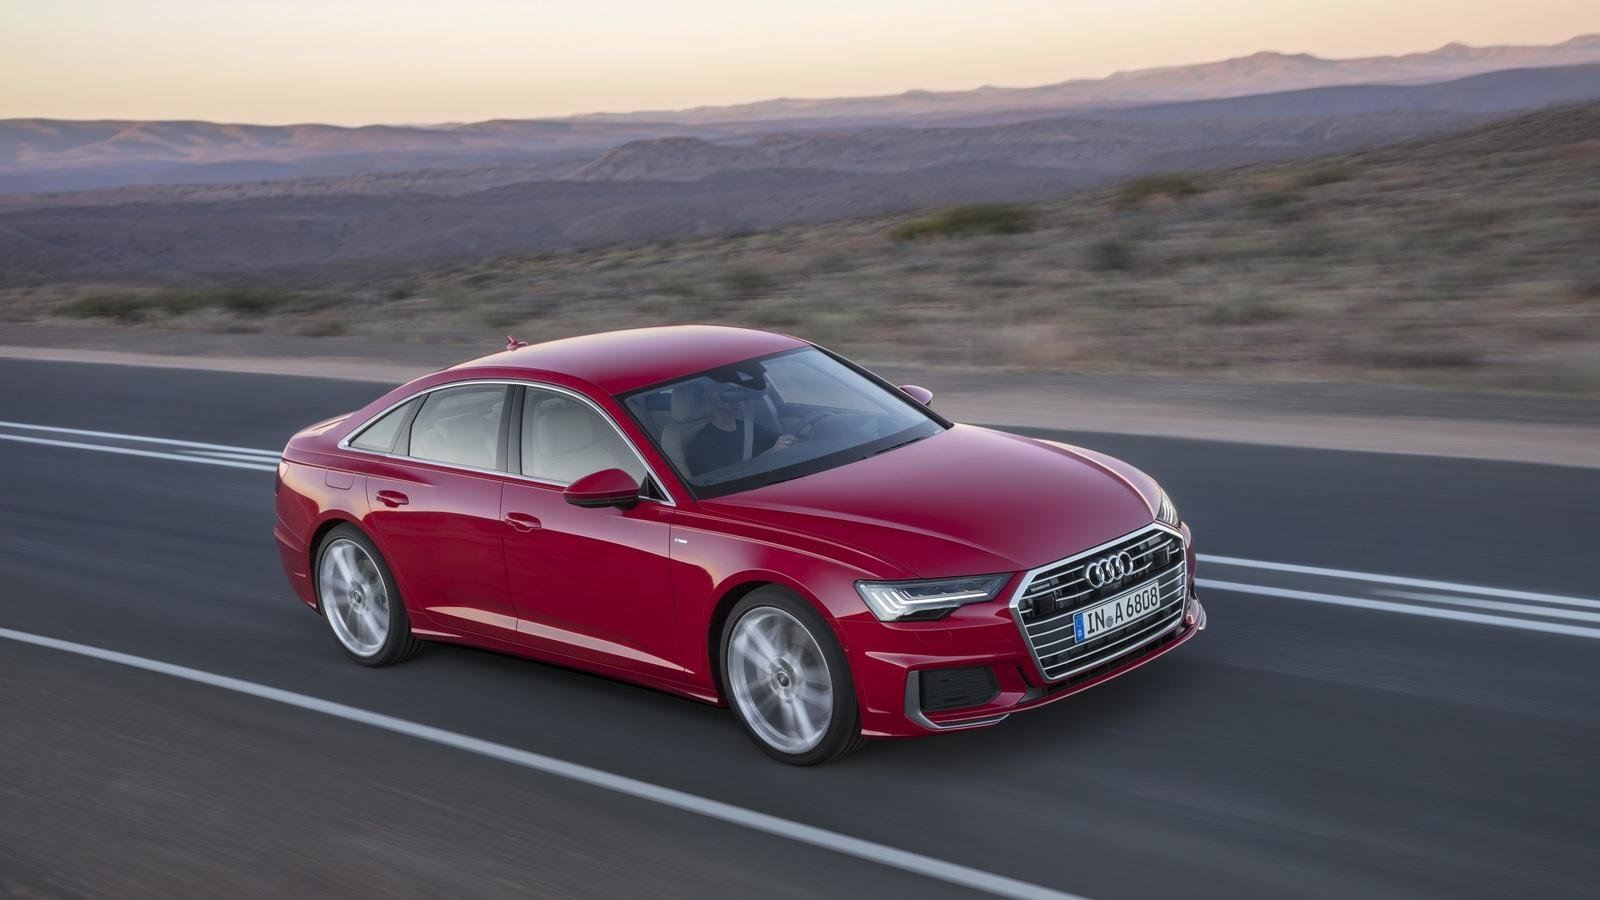 Latest Audi A6 Latest News Reviews Specifications Prices Free Download